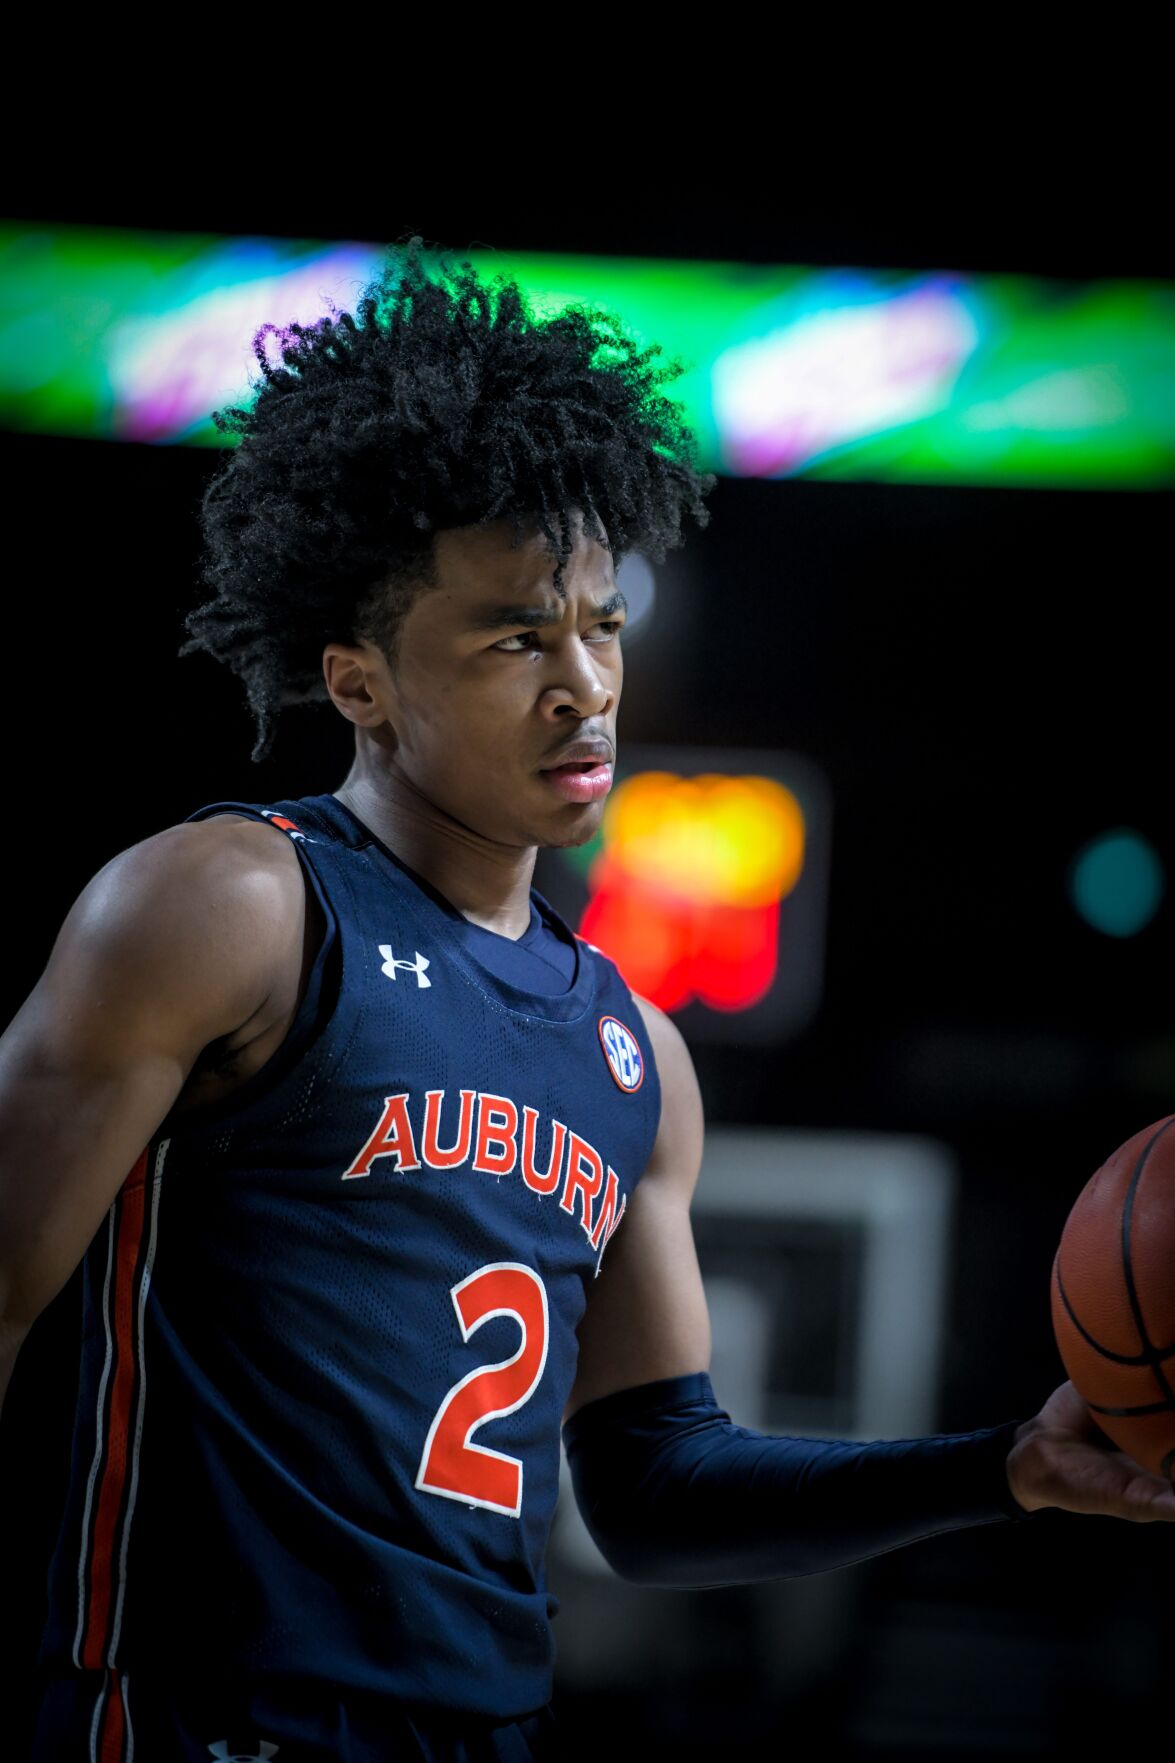 SPORTS-AUBURN-BASKETBALL-PG-SHARIFE-COOPER-7-MT.jpg